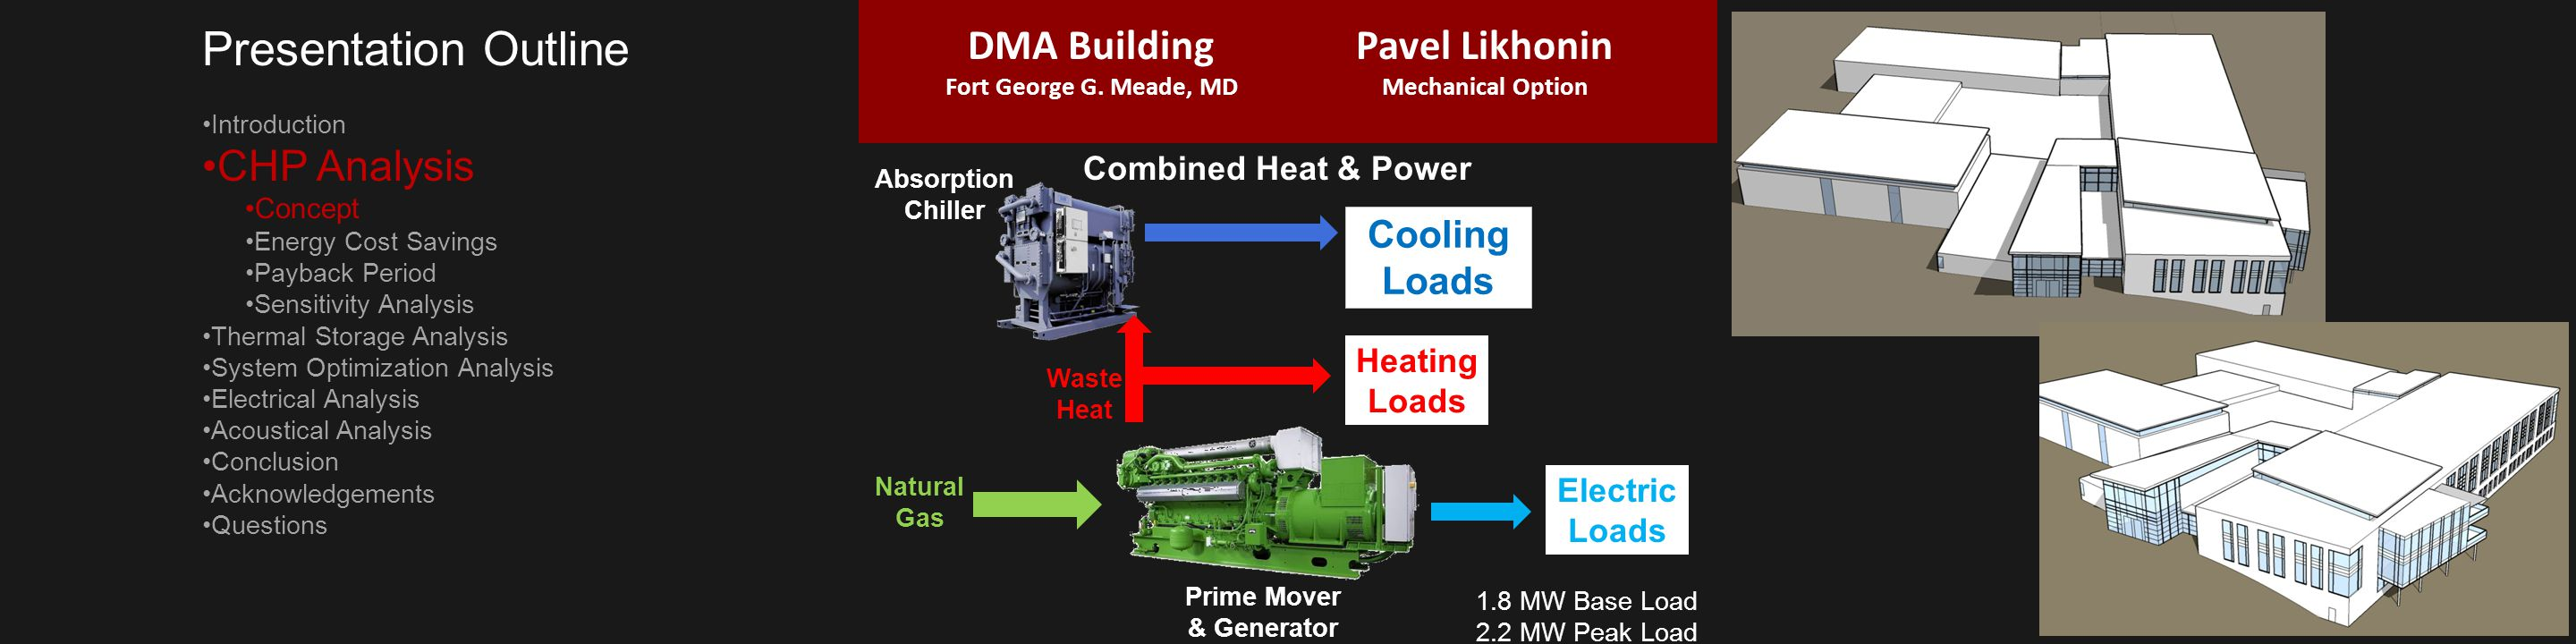 Presentation Outline Introduction CHP Analysis Concept Energy Cost Savings Payback Period Sensitivity Analysis Thermal Storage Analysis System Optimiz